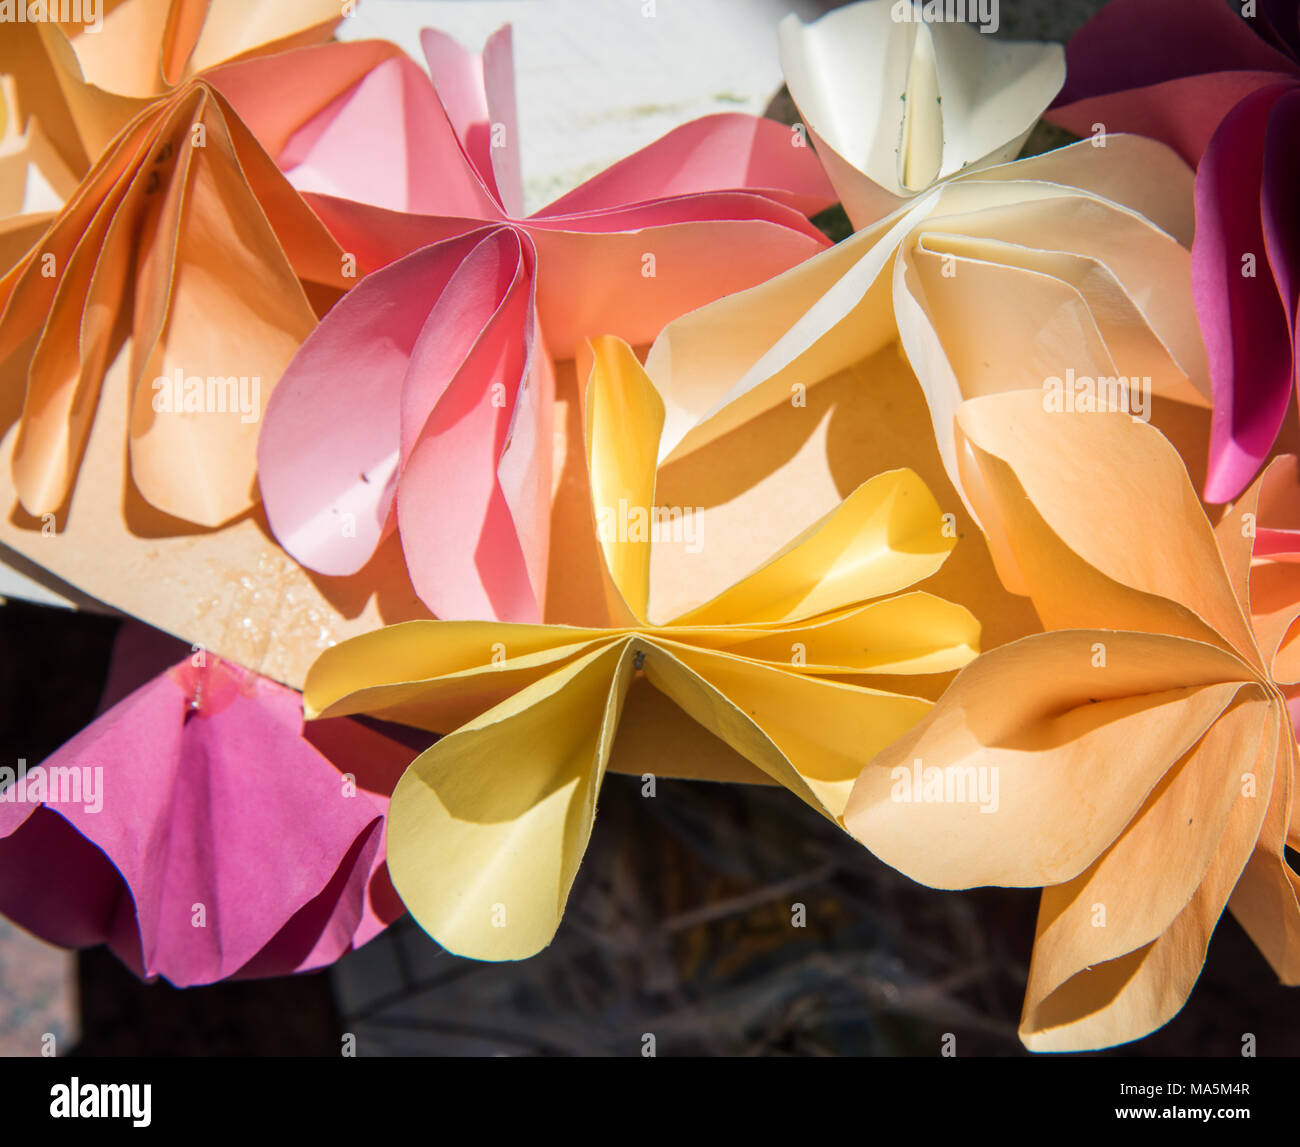 Closeup Of Origami Pastel Coloured Folded Paper Flowers Stock Photo